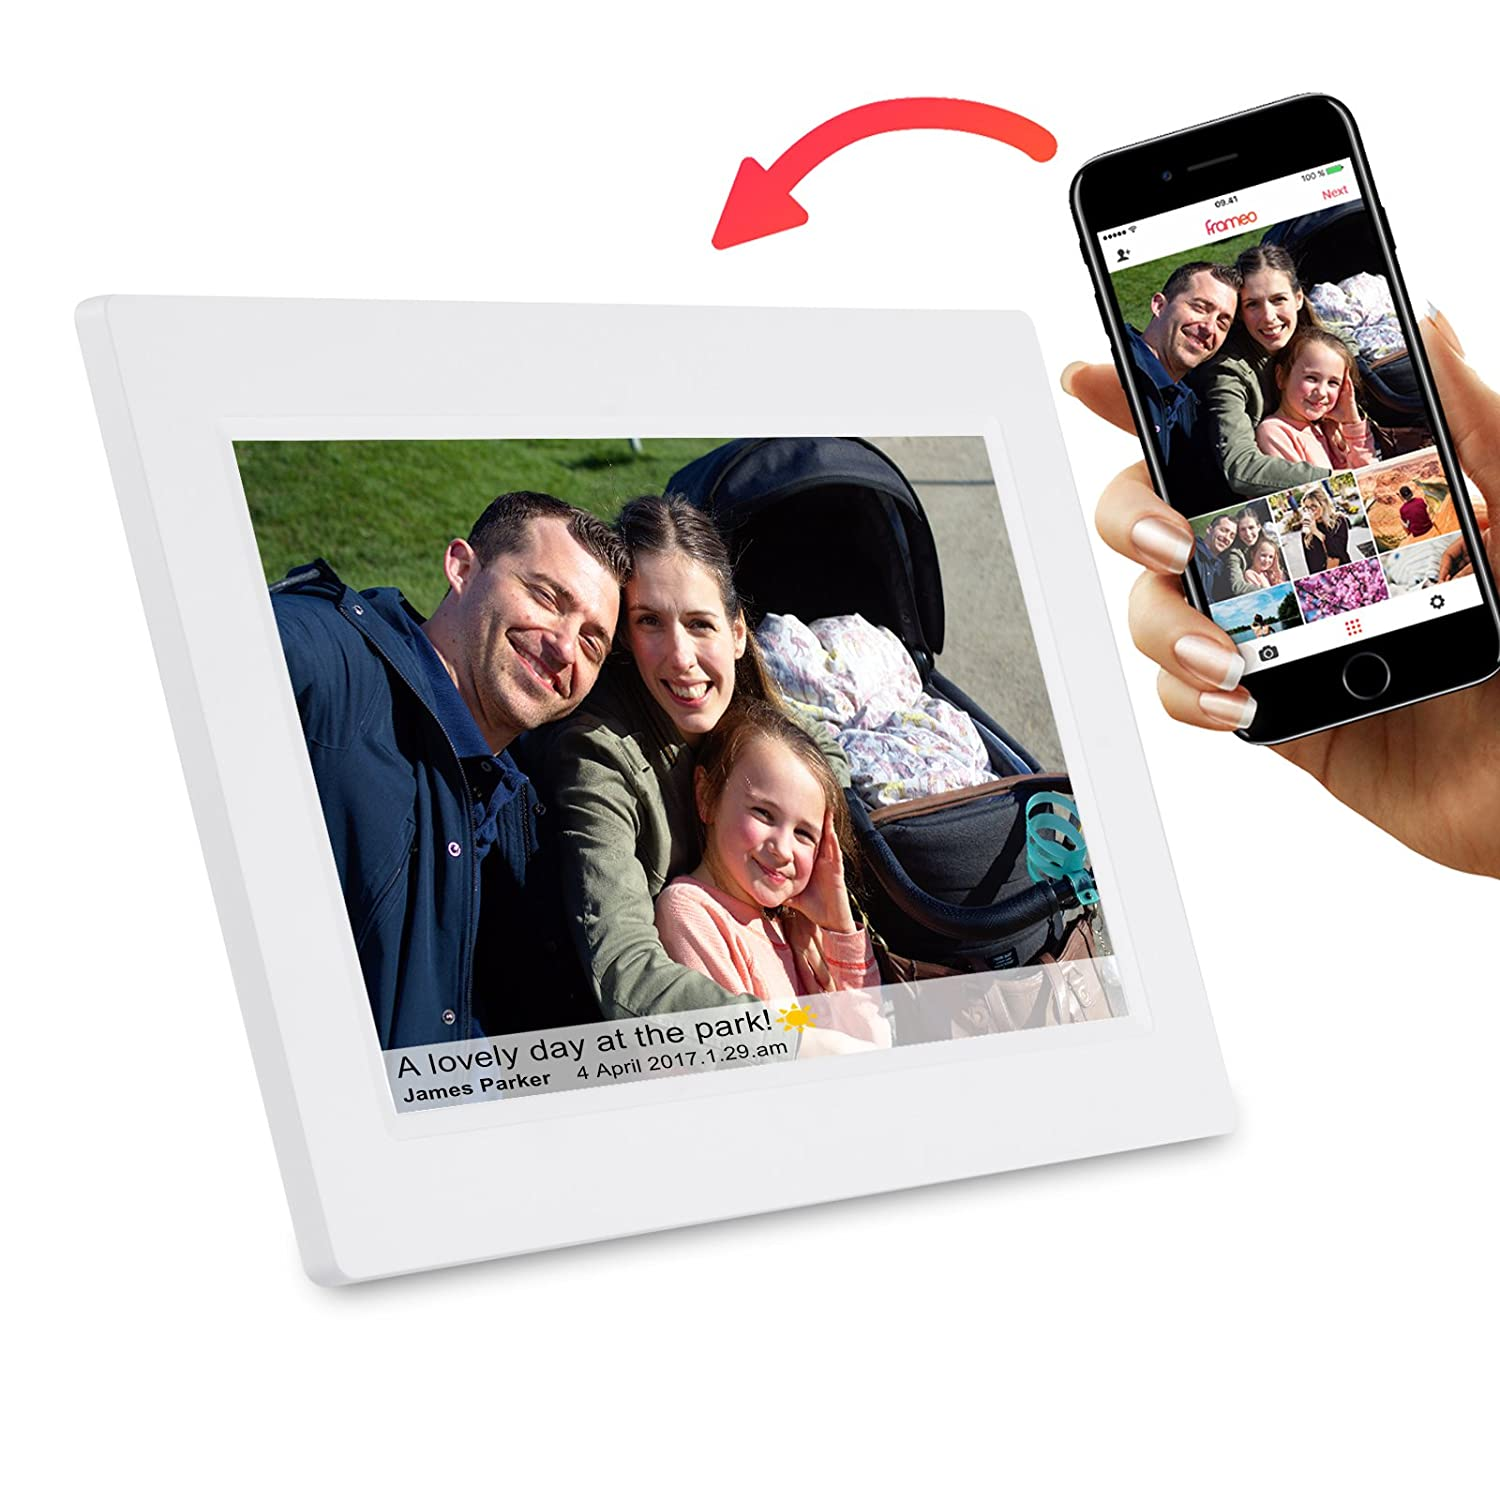 Feelcare 7 Inch Smart WiFi Digital Picture Frame with Touch Screen White Instantly Sharing Moments Wall-Mountable IPS LCD Panel Built in 8GB Memory Portrait/&Landscape